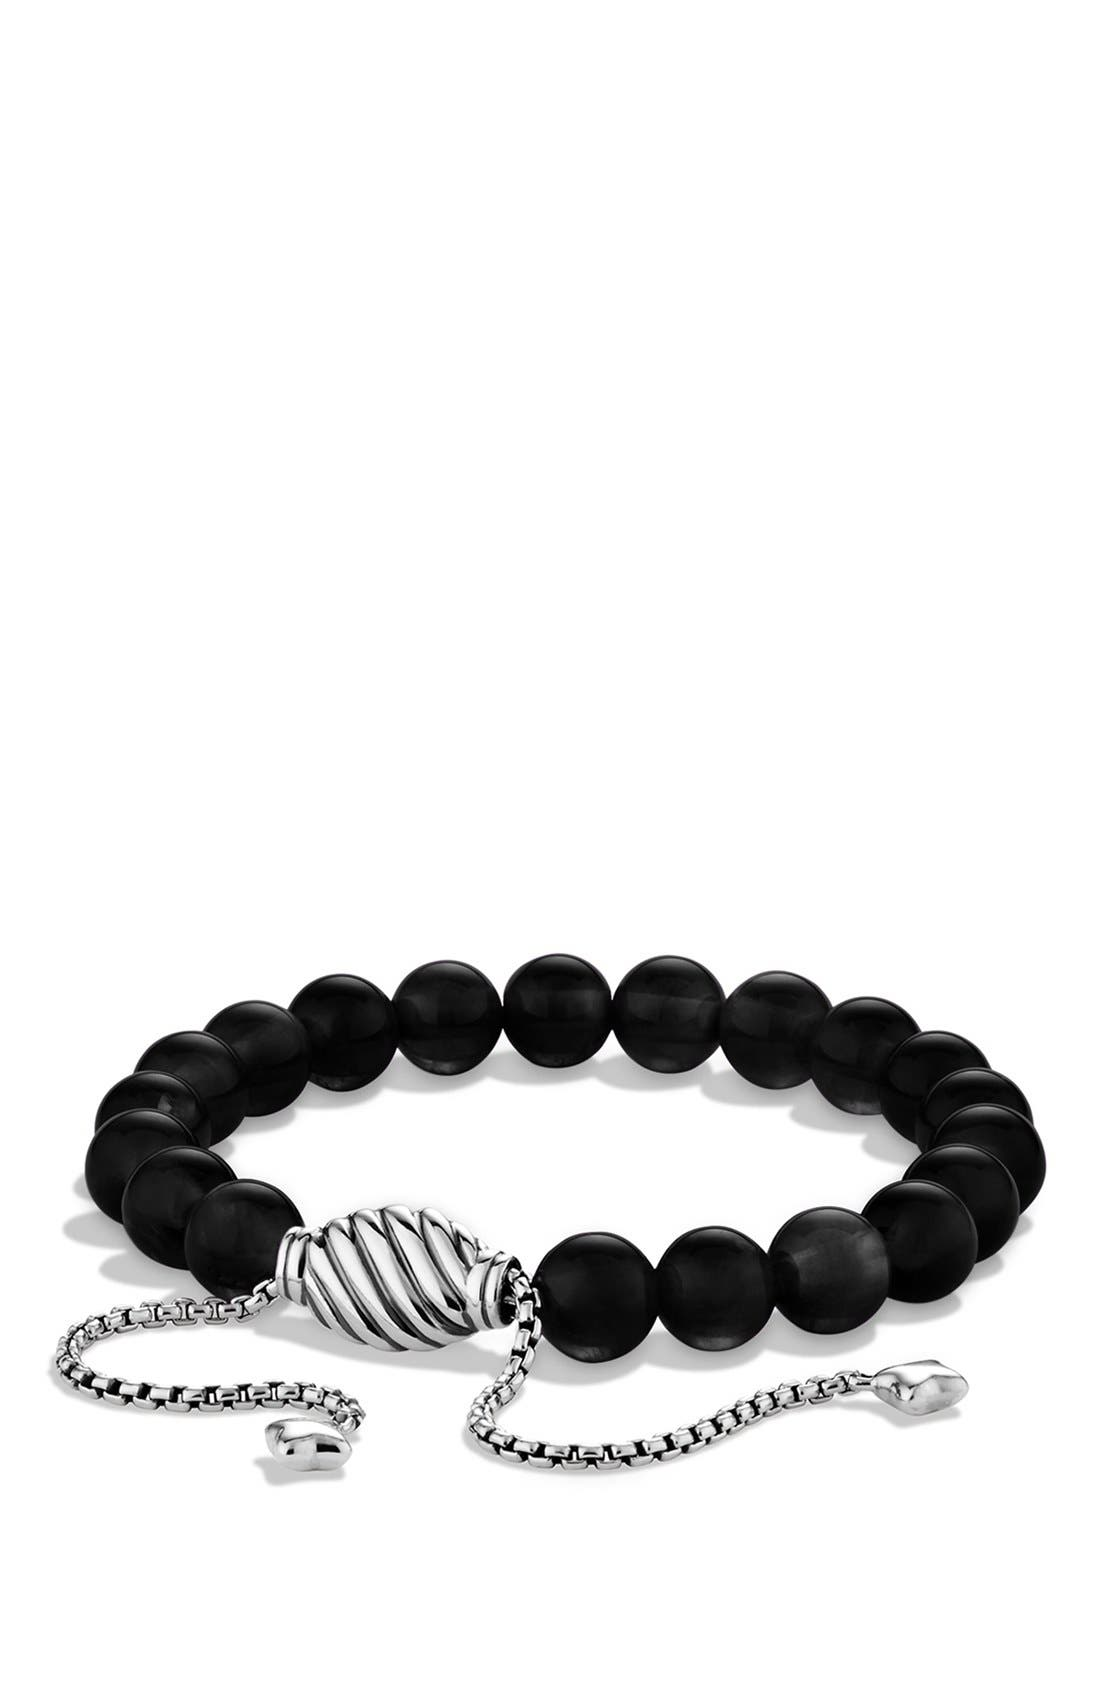 'Spiritual Beads' Bracelet,                             Main thumbnail 1, color,                             BLACK ONYX